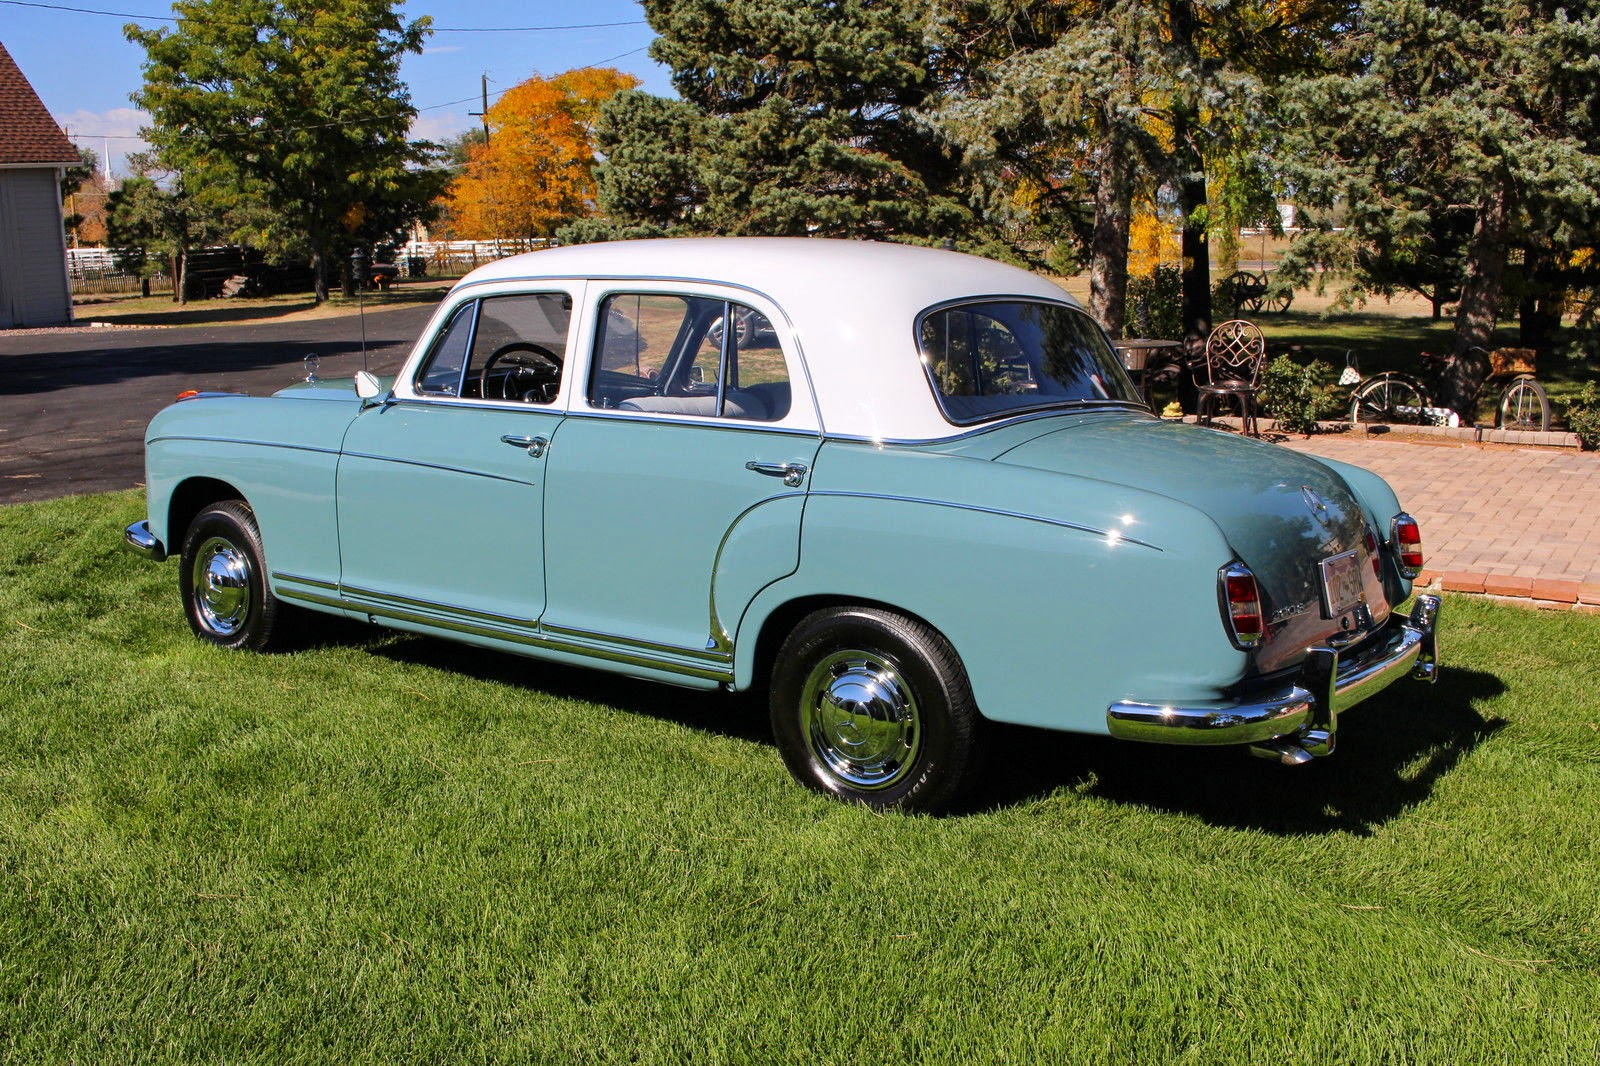 1958 mercedes benz w180 220s concourse restored ponton for 1958 mercedes benz 220s for sale